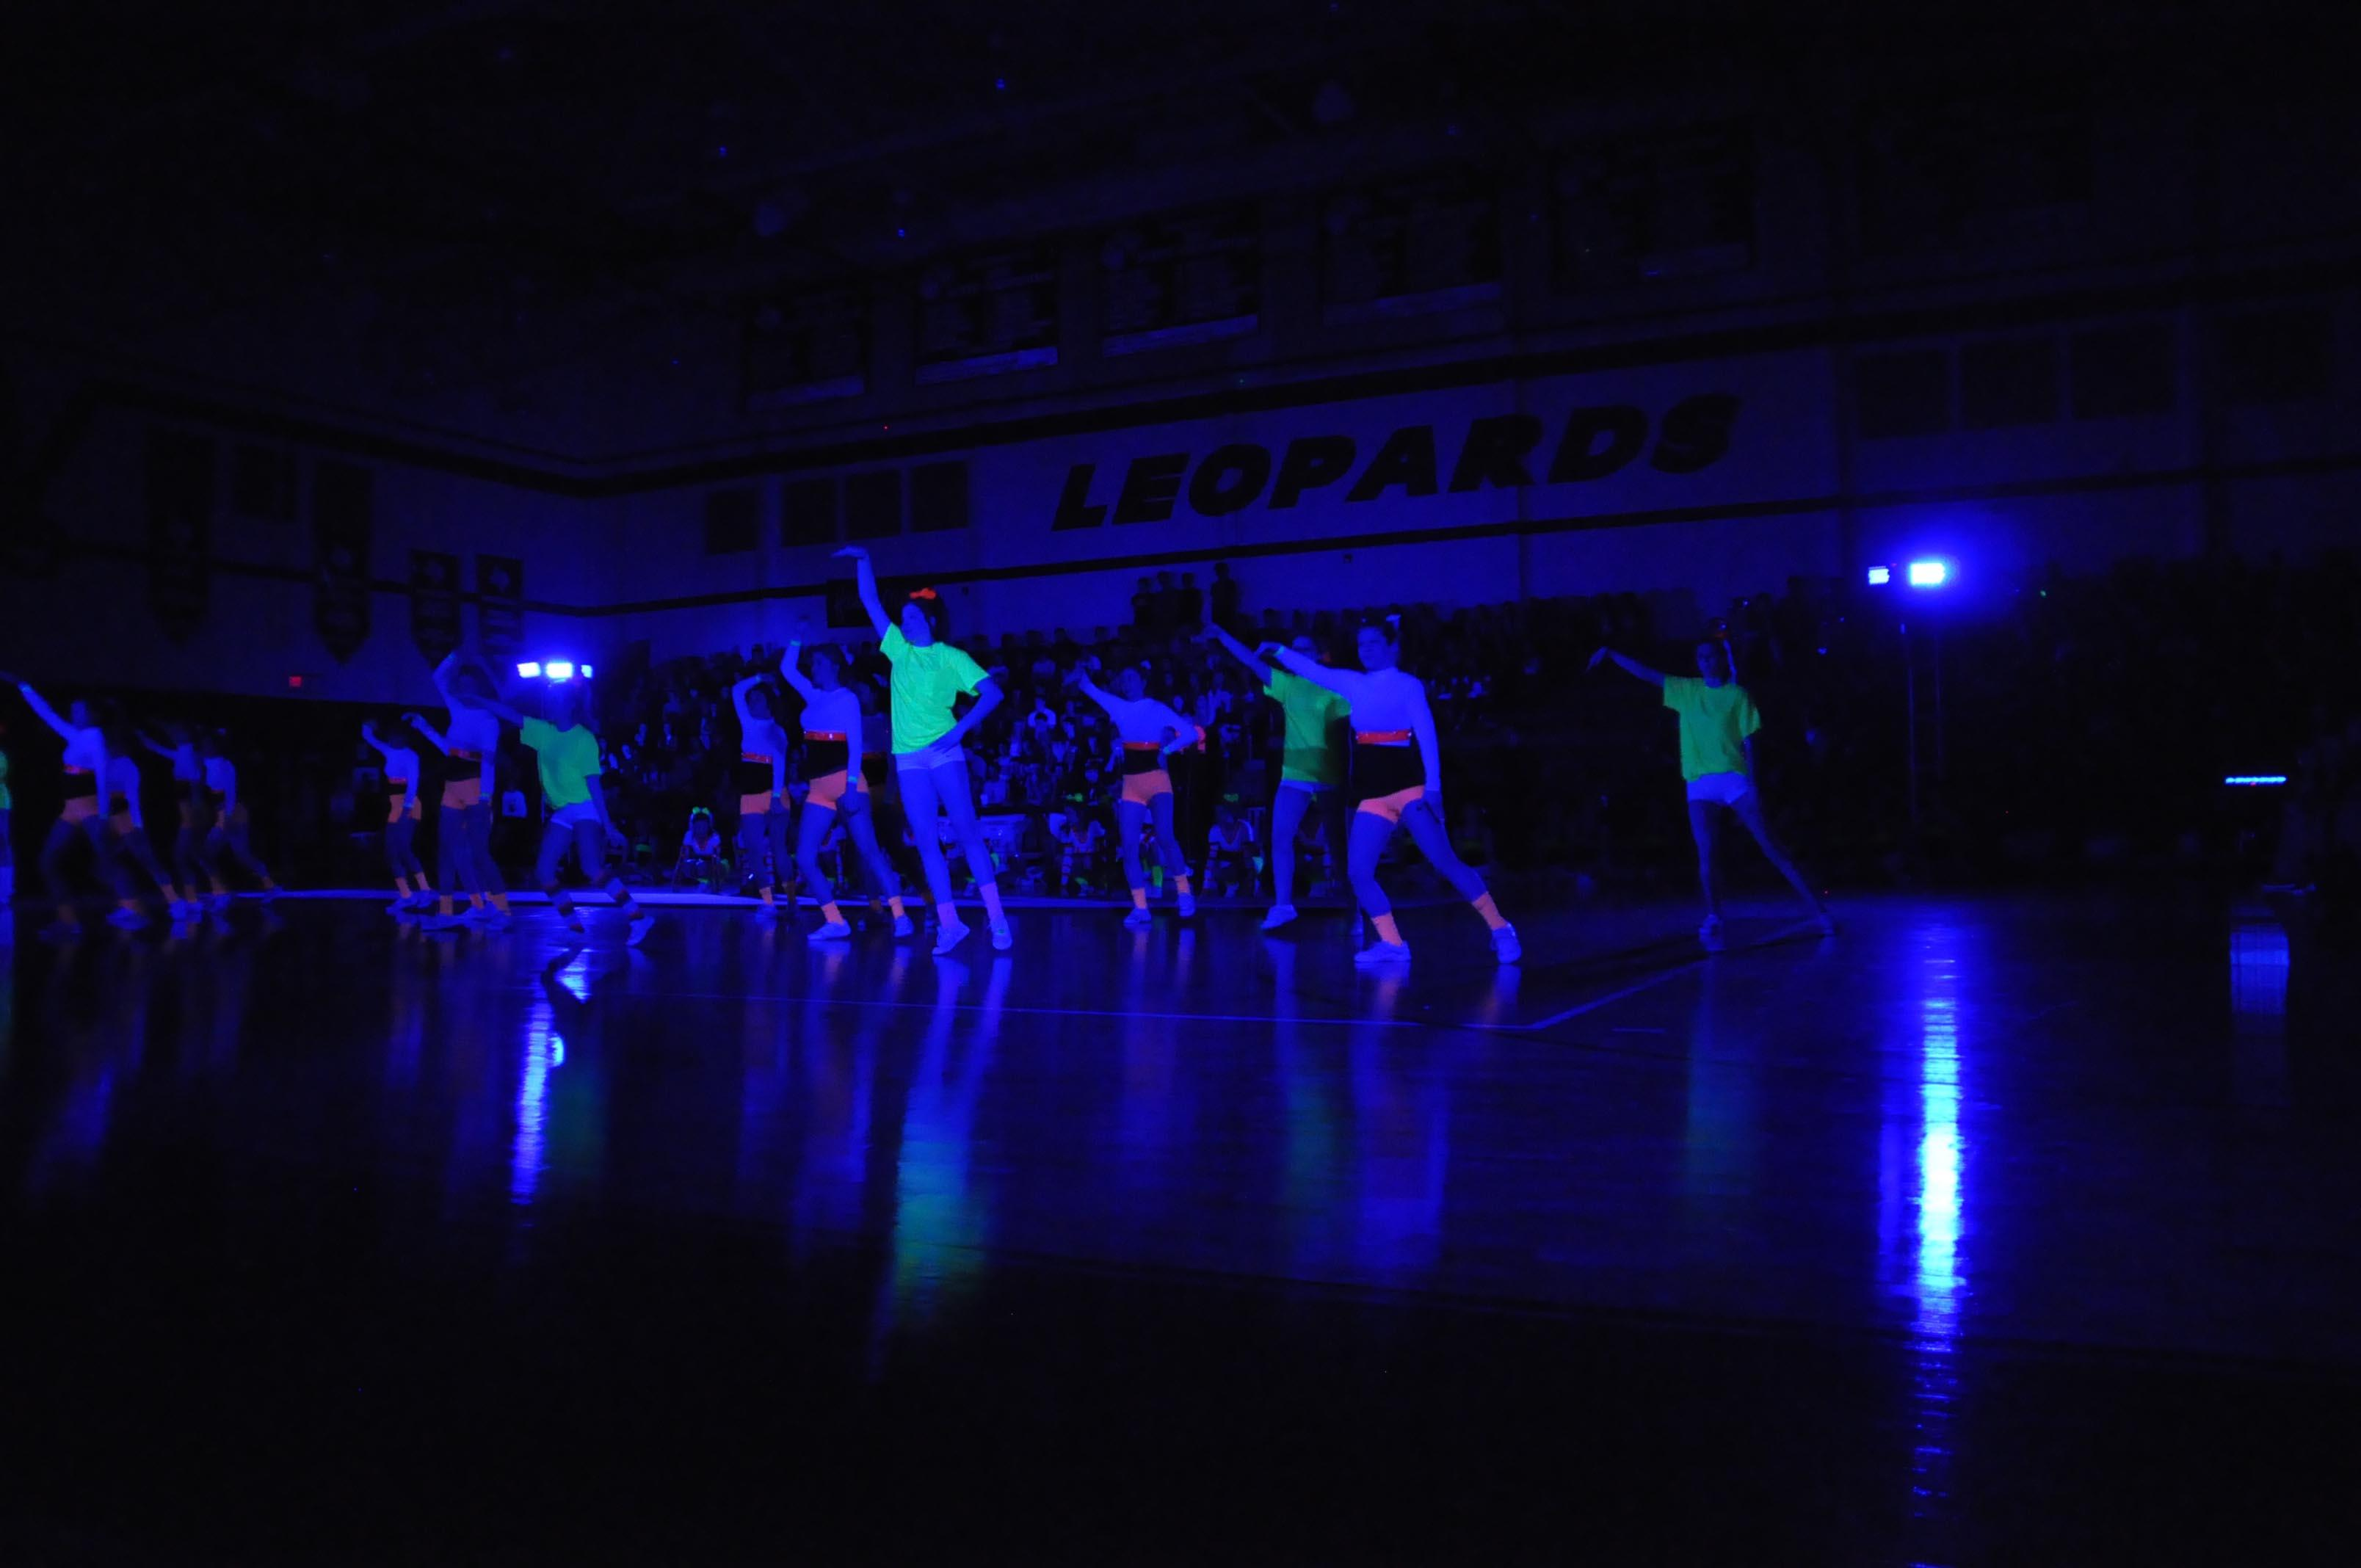 Cheerleaders light up the room while they perform their routine during the Black Light Pep Rally & Black Light Pep Rally u2013 The Red Ledger